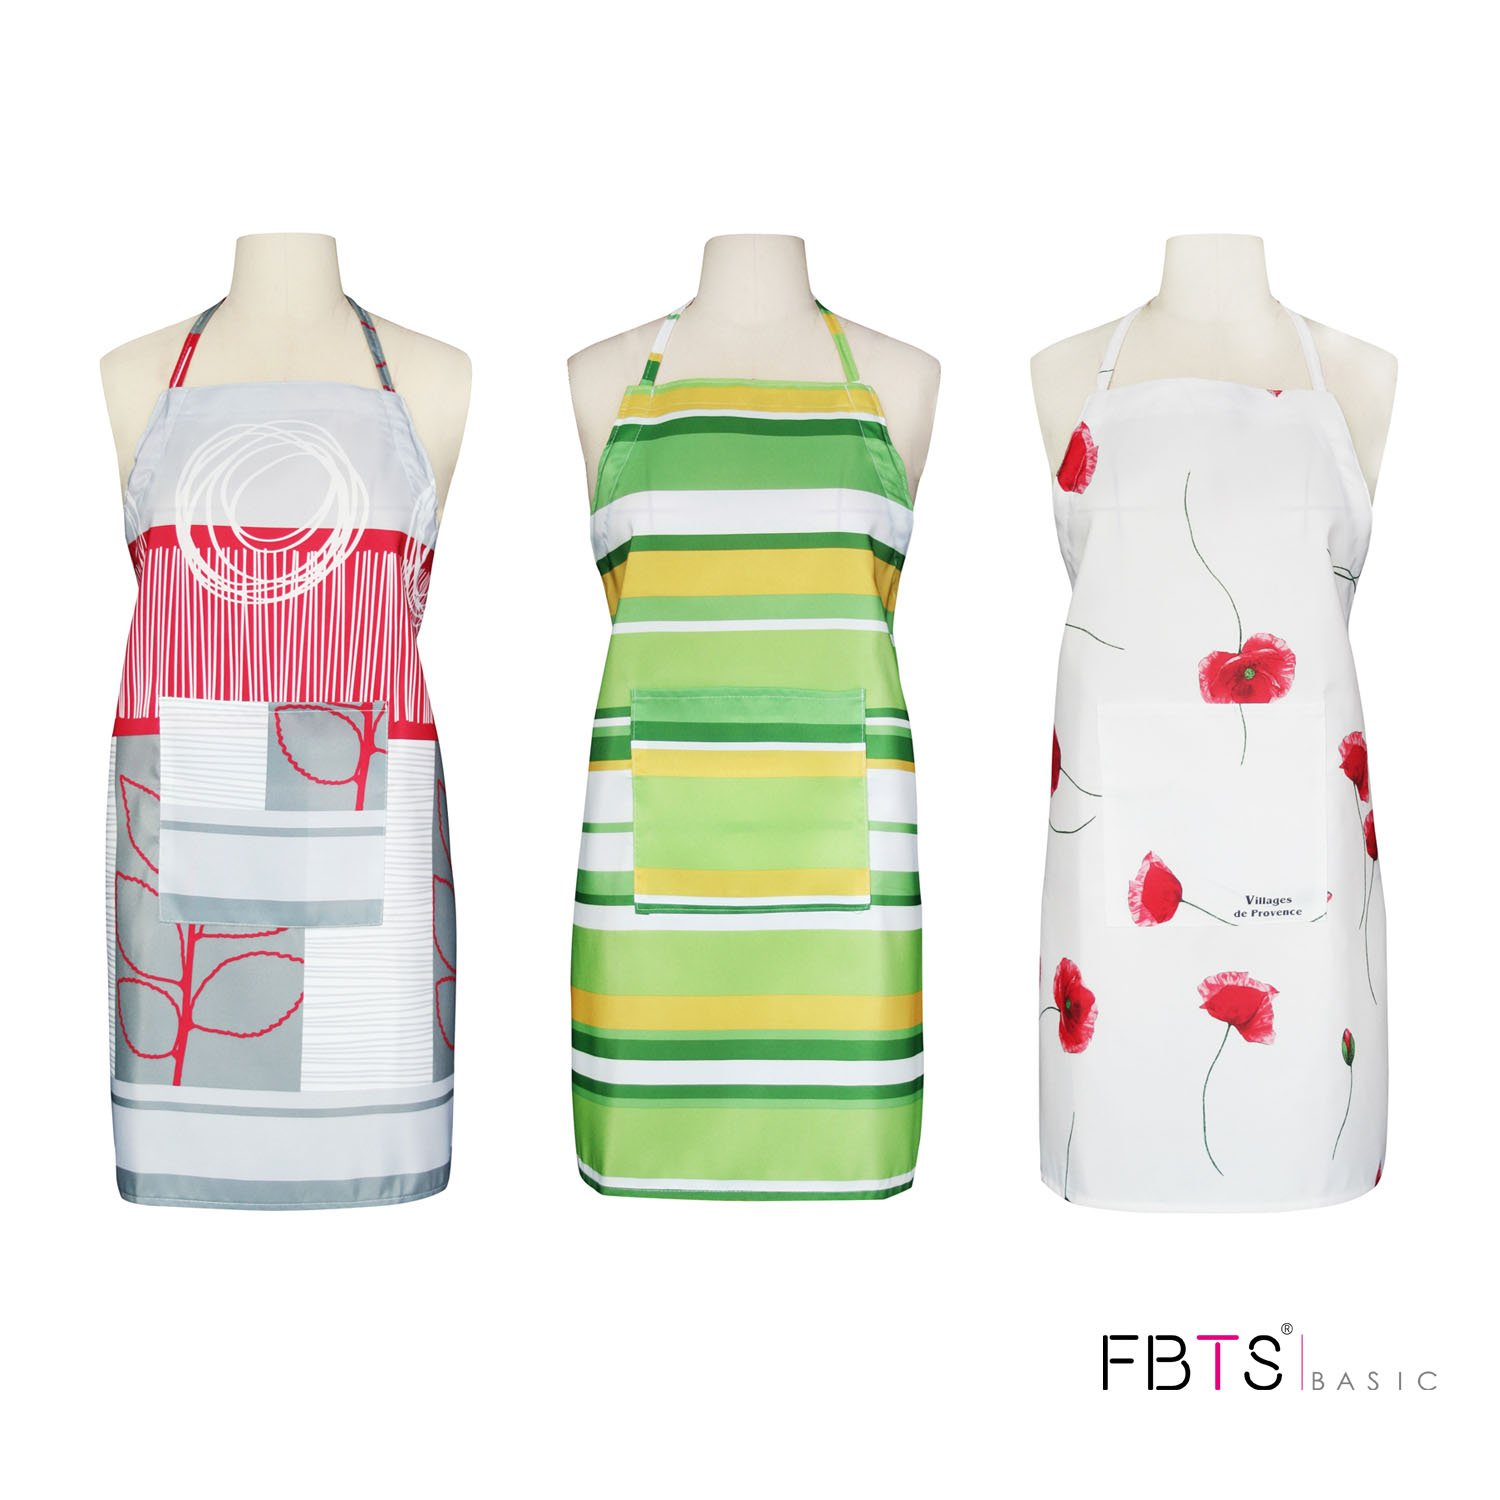 Aprons (Set Of 3) Adjustable Height With Front Pocket Water Resistant For Women And Men Durable by FBTS Basic